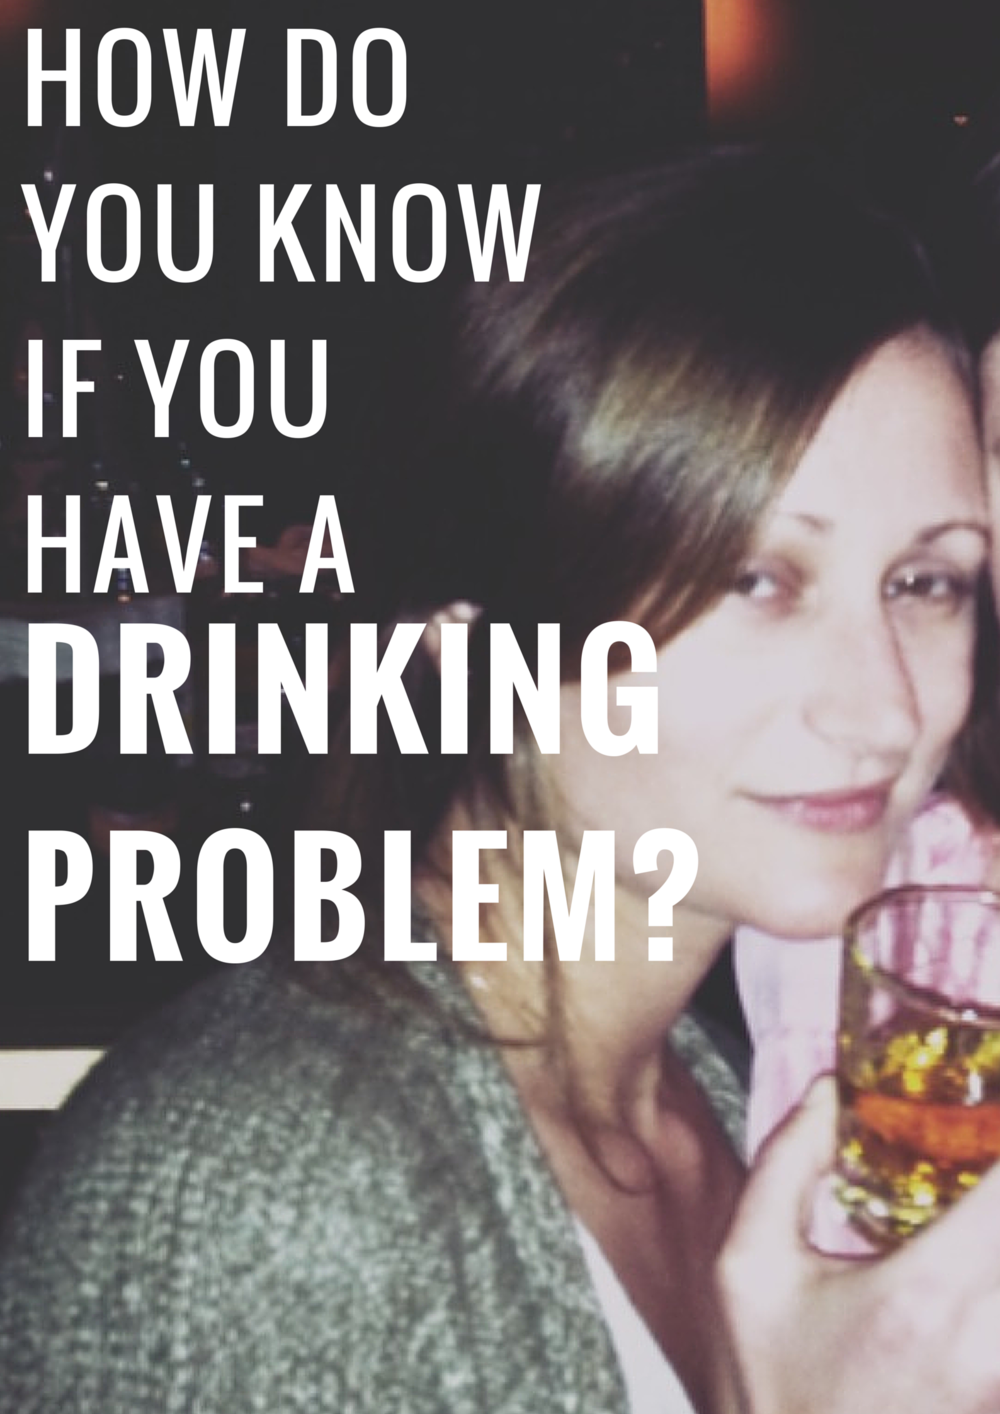 HOW DO YOU KNOW IF YOU HAVE A DRINKING PROBLEM